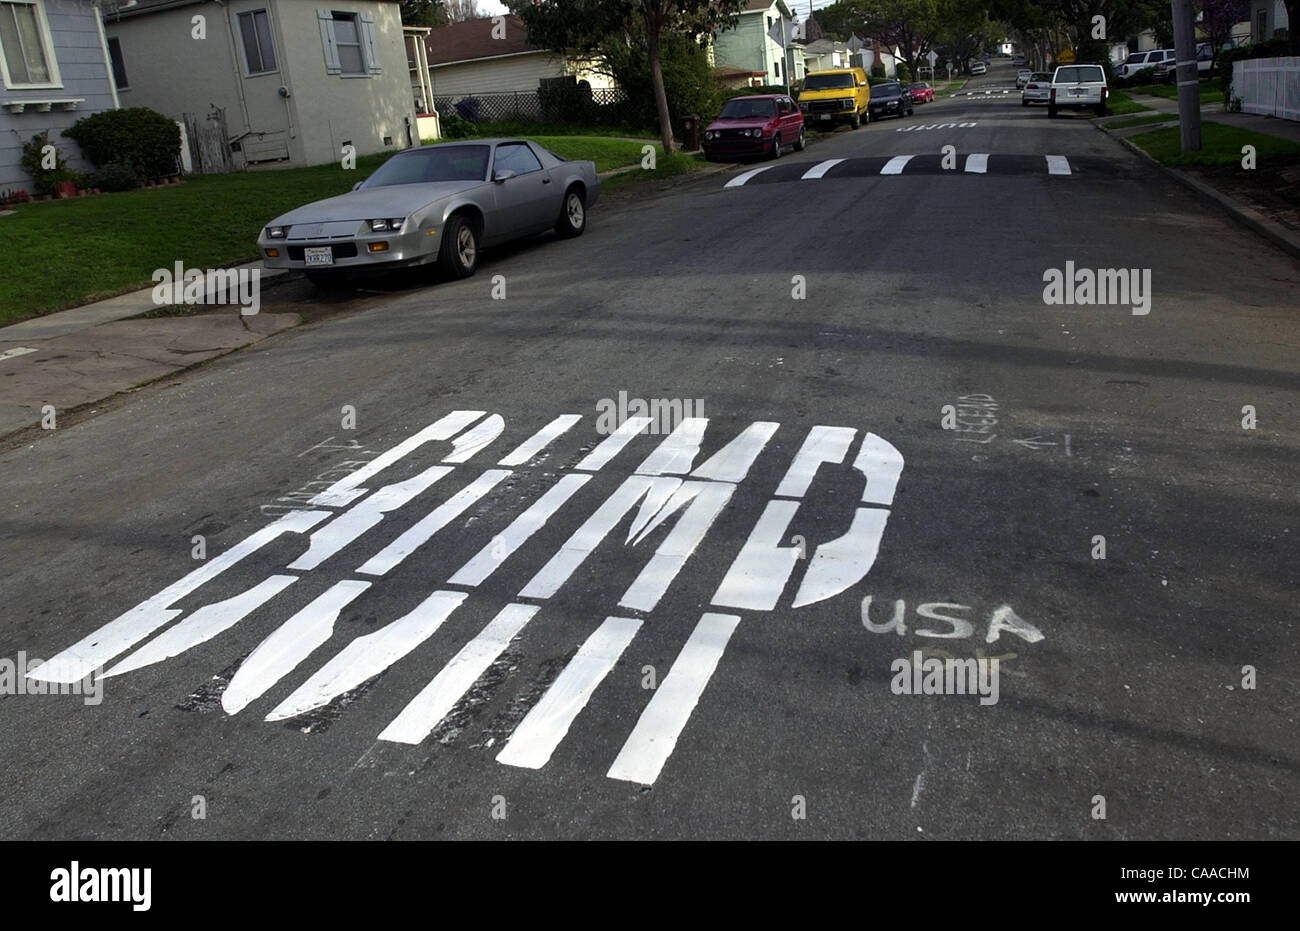 Work Crews With Asphalt Stripping Inc Fixed A Misspelling BMUP While Working On Laying Down The Word For New Speed Bumps Mariposa Street And